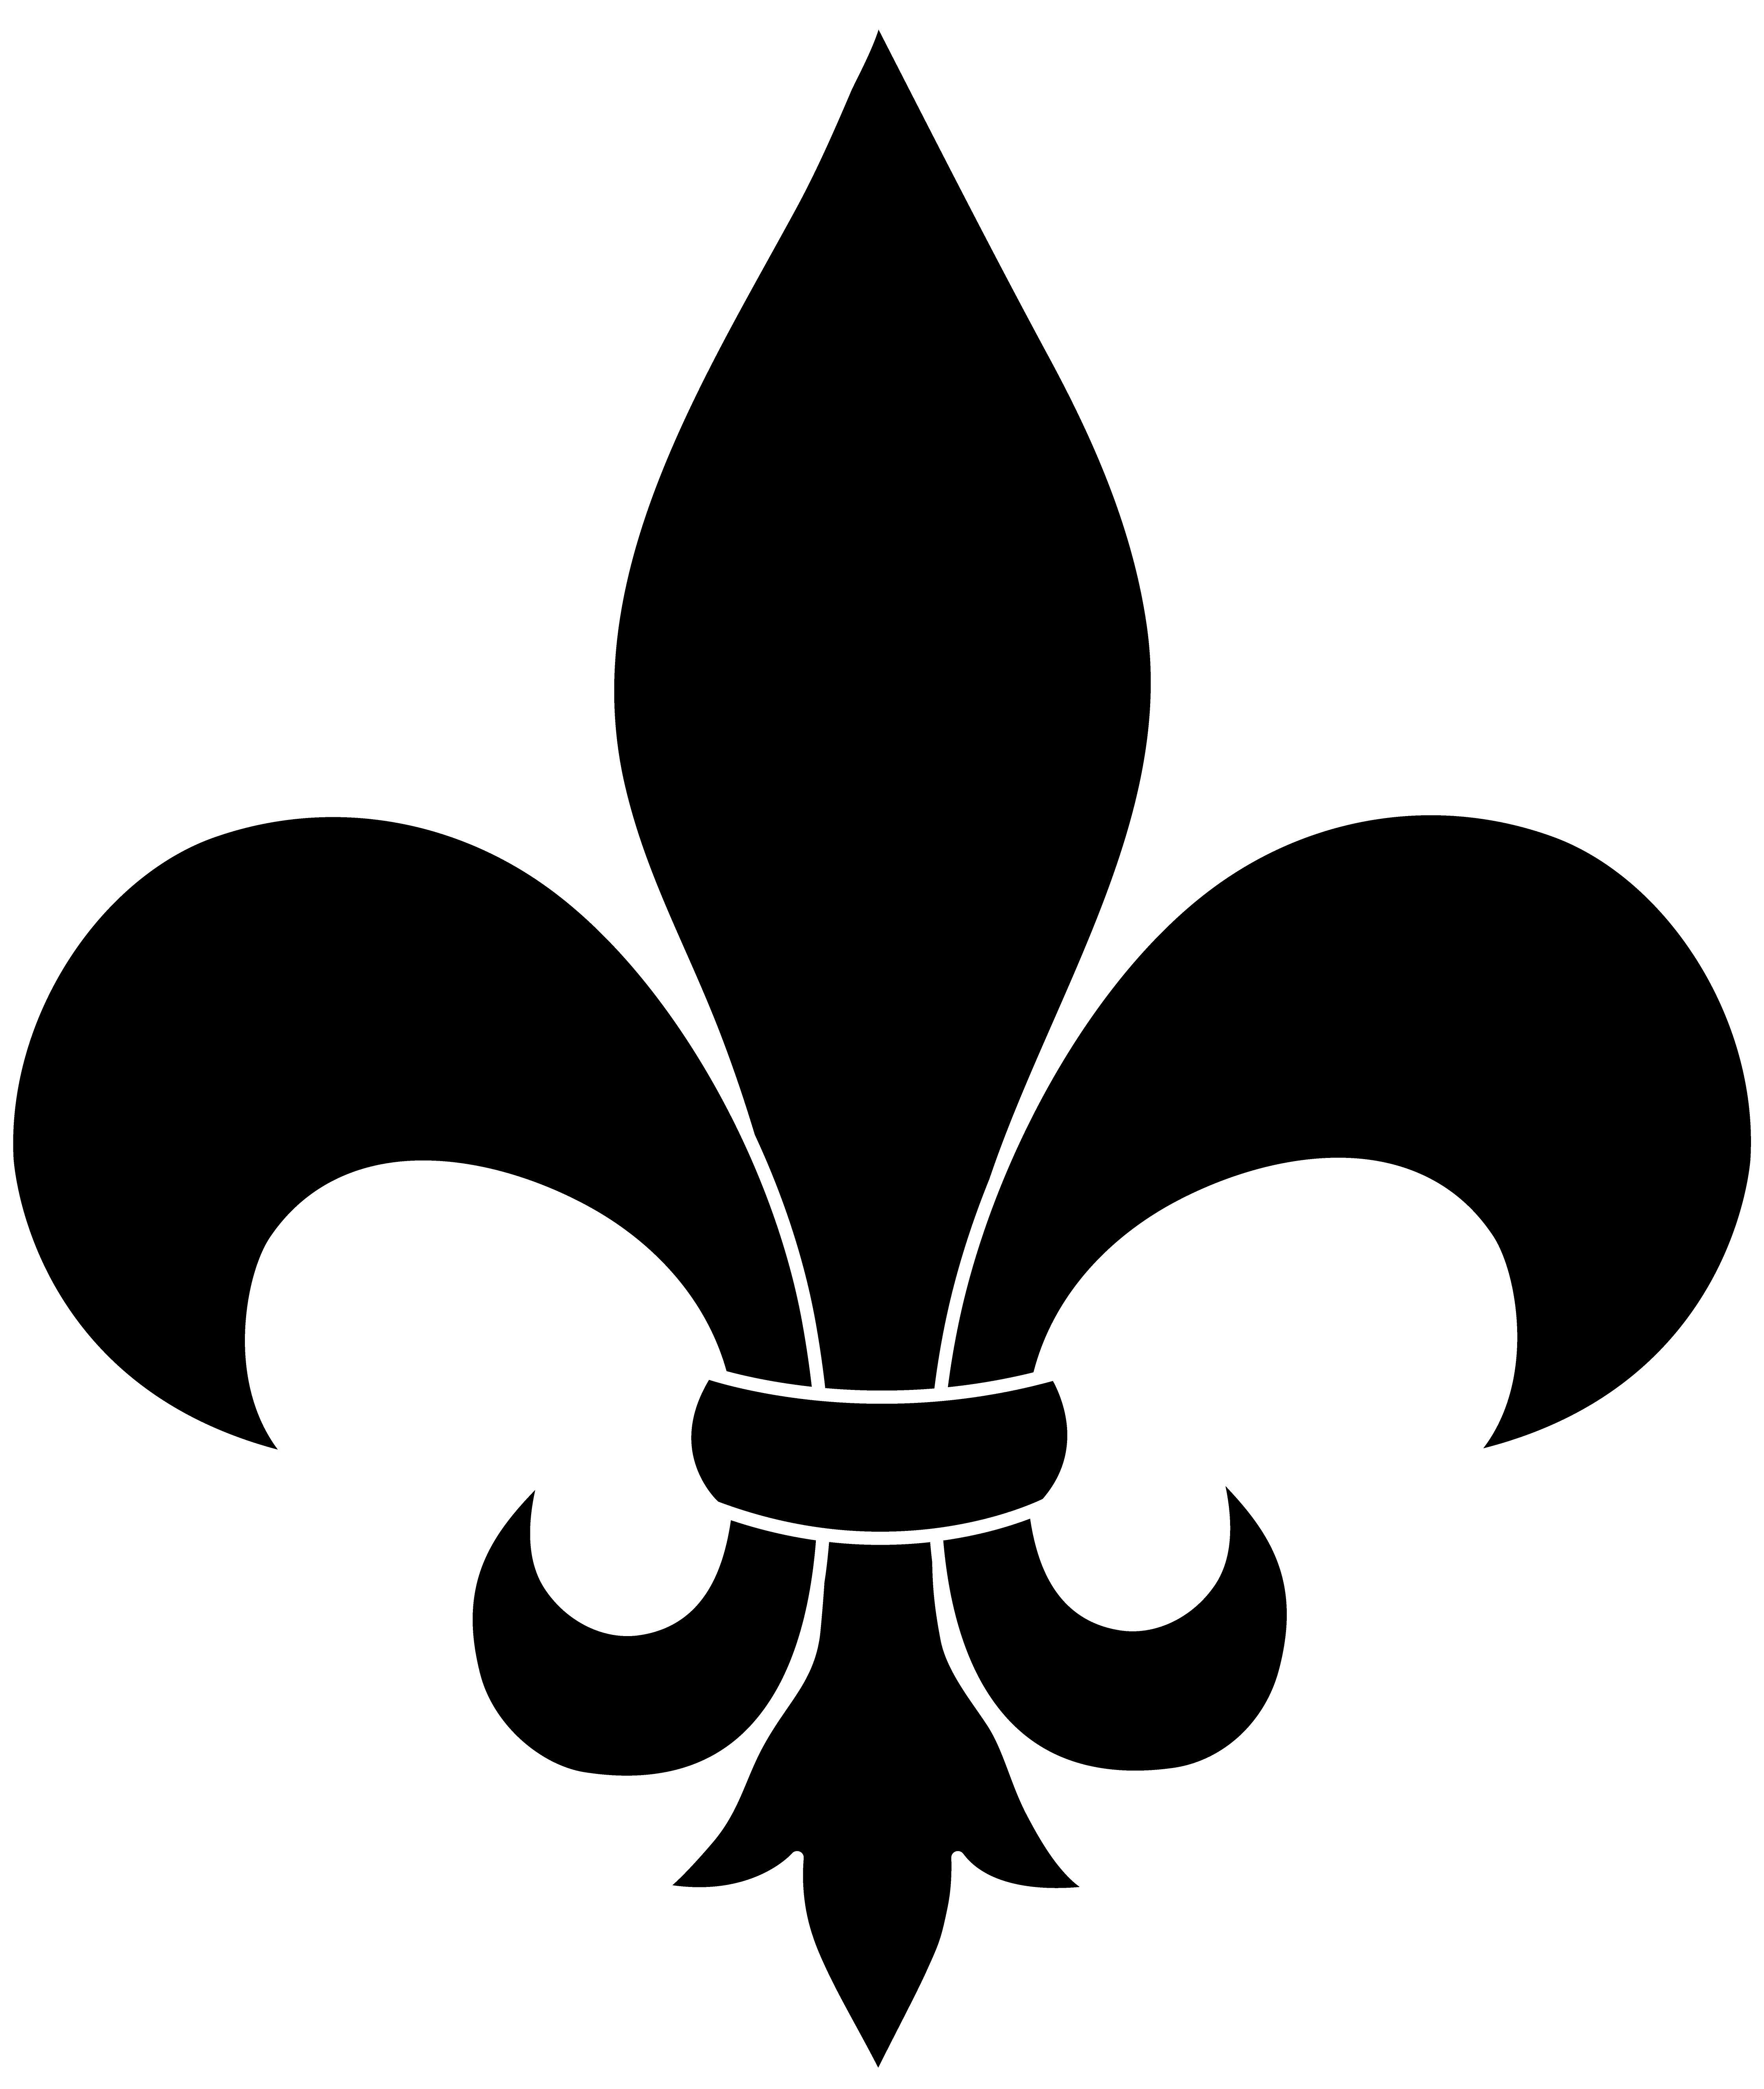 fleur de lis vector image clipart best. Black Bedroom Furniture Sets. Home Design Ideas